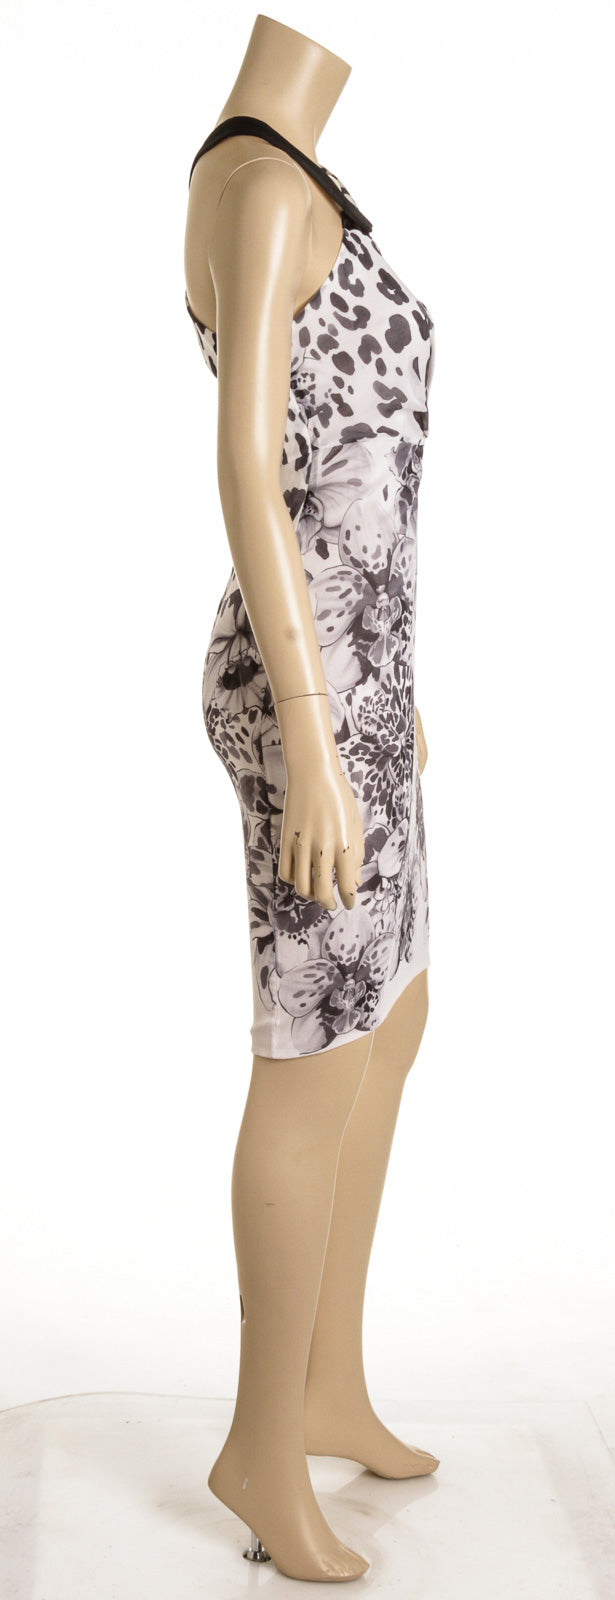 Versace Black and White Floral Cheetah Print Silk Dress (Size 40)